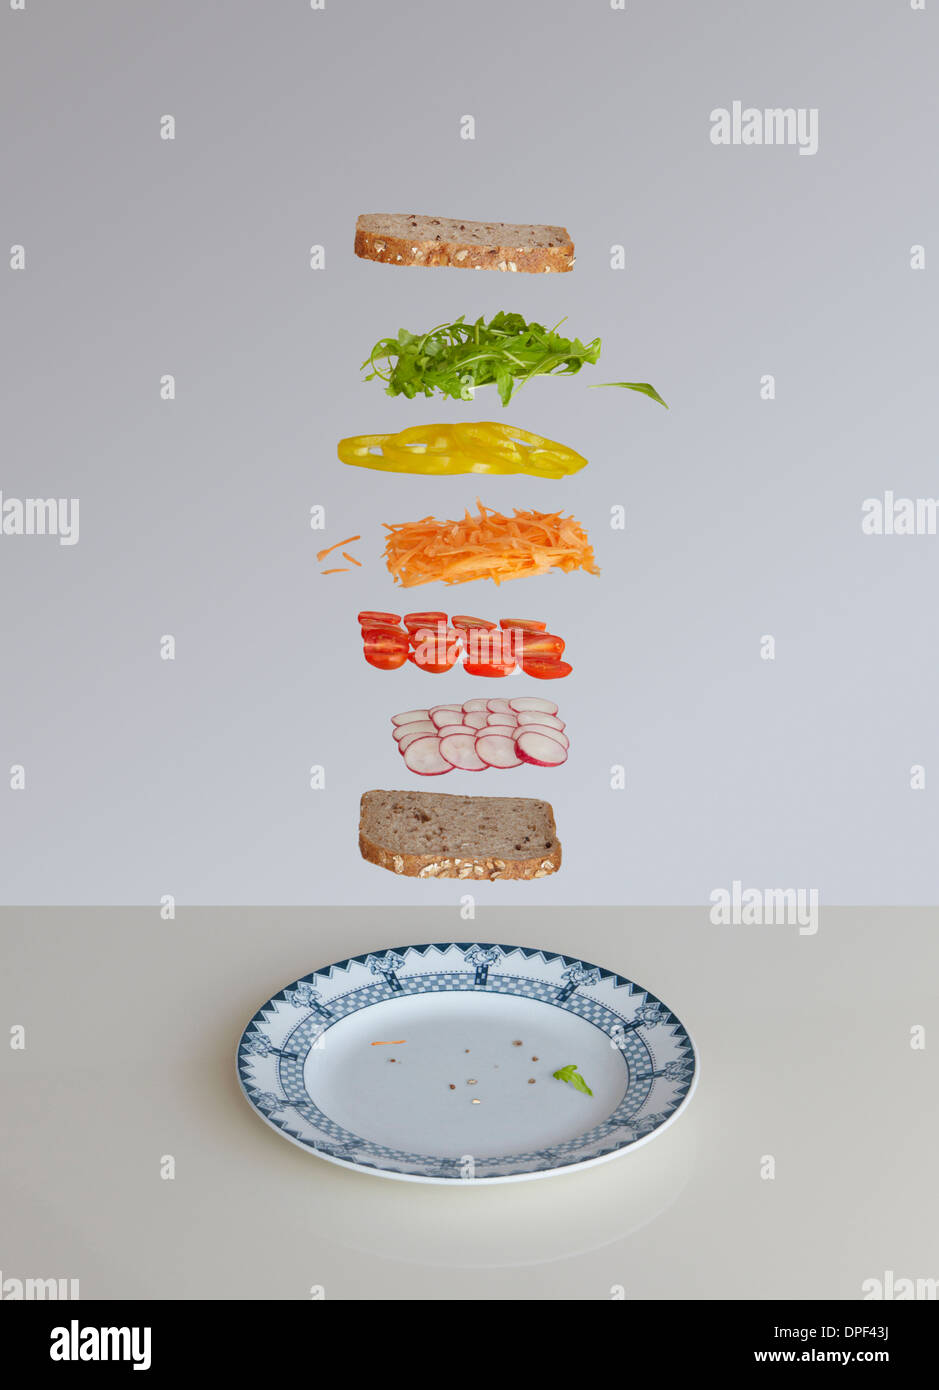 Salad sandwich deconstructed - Stock Image